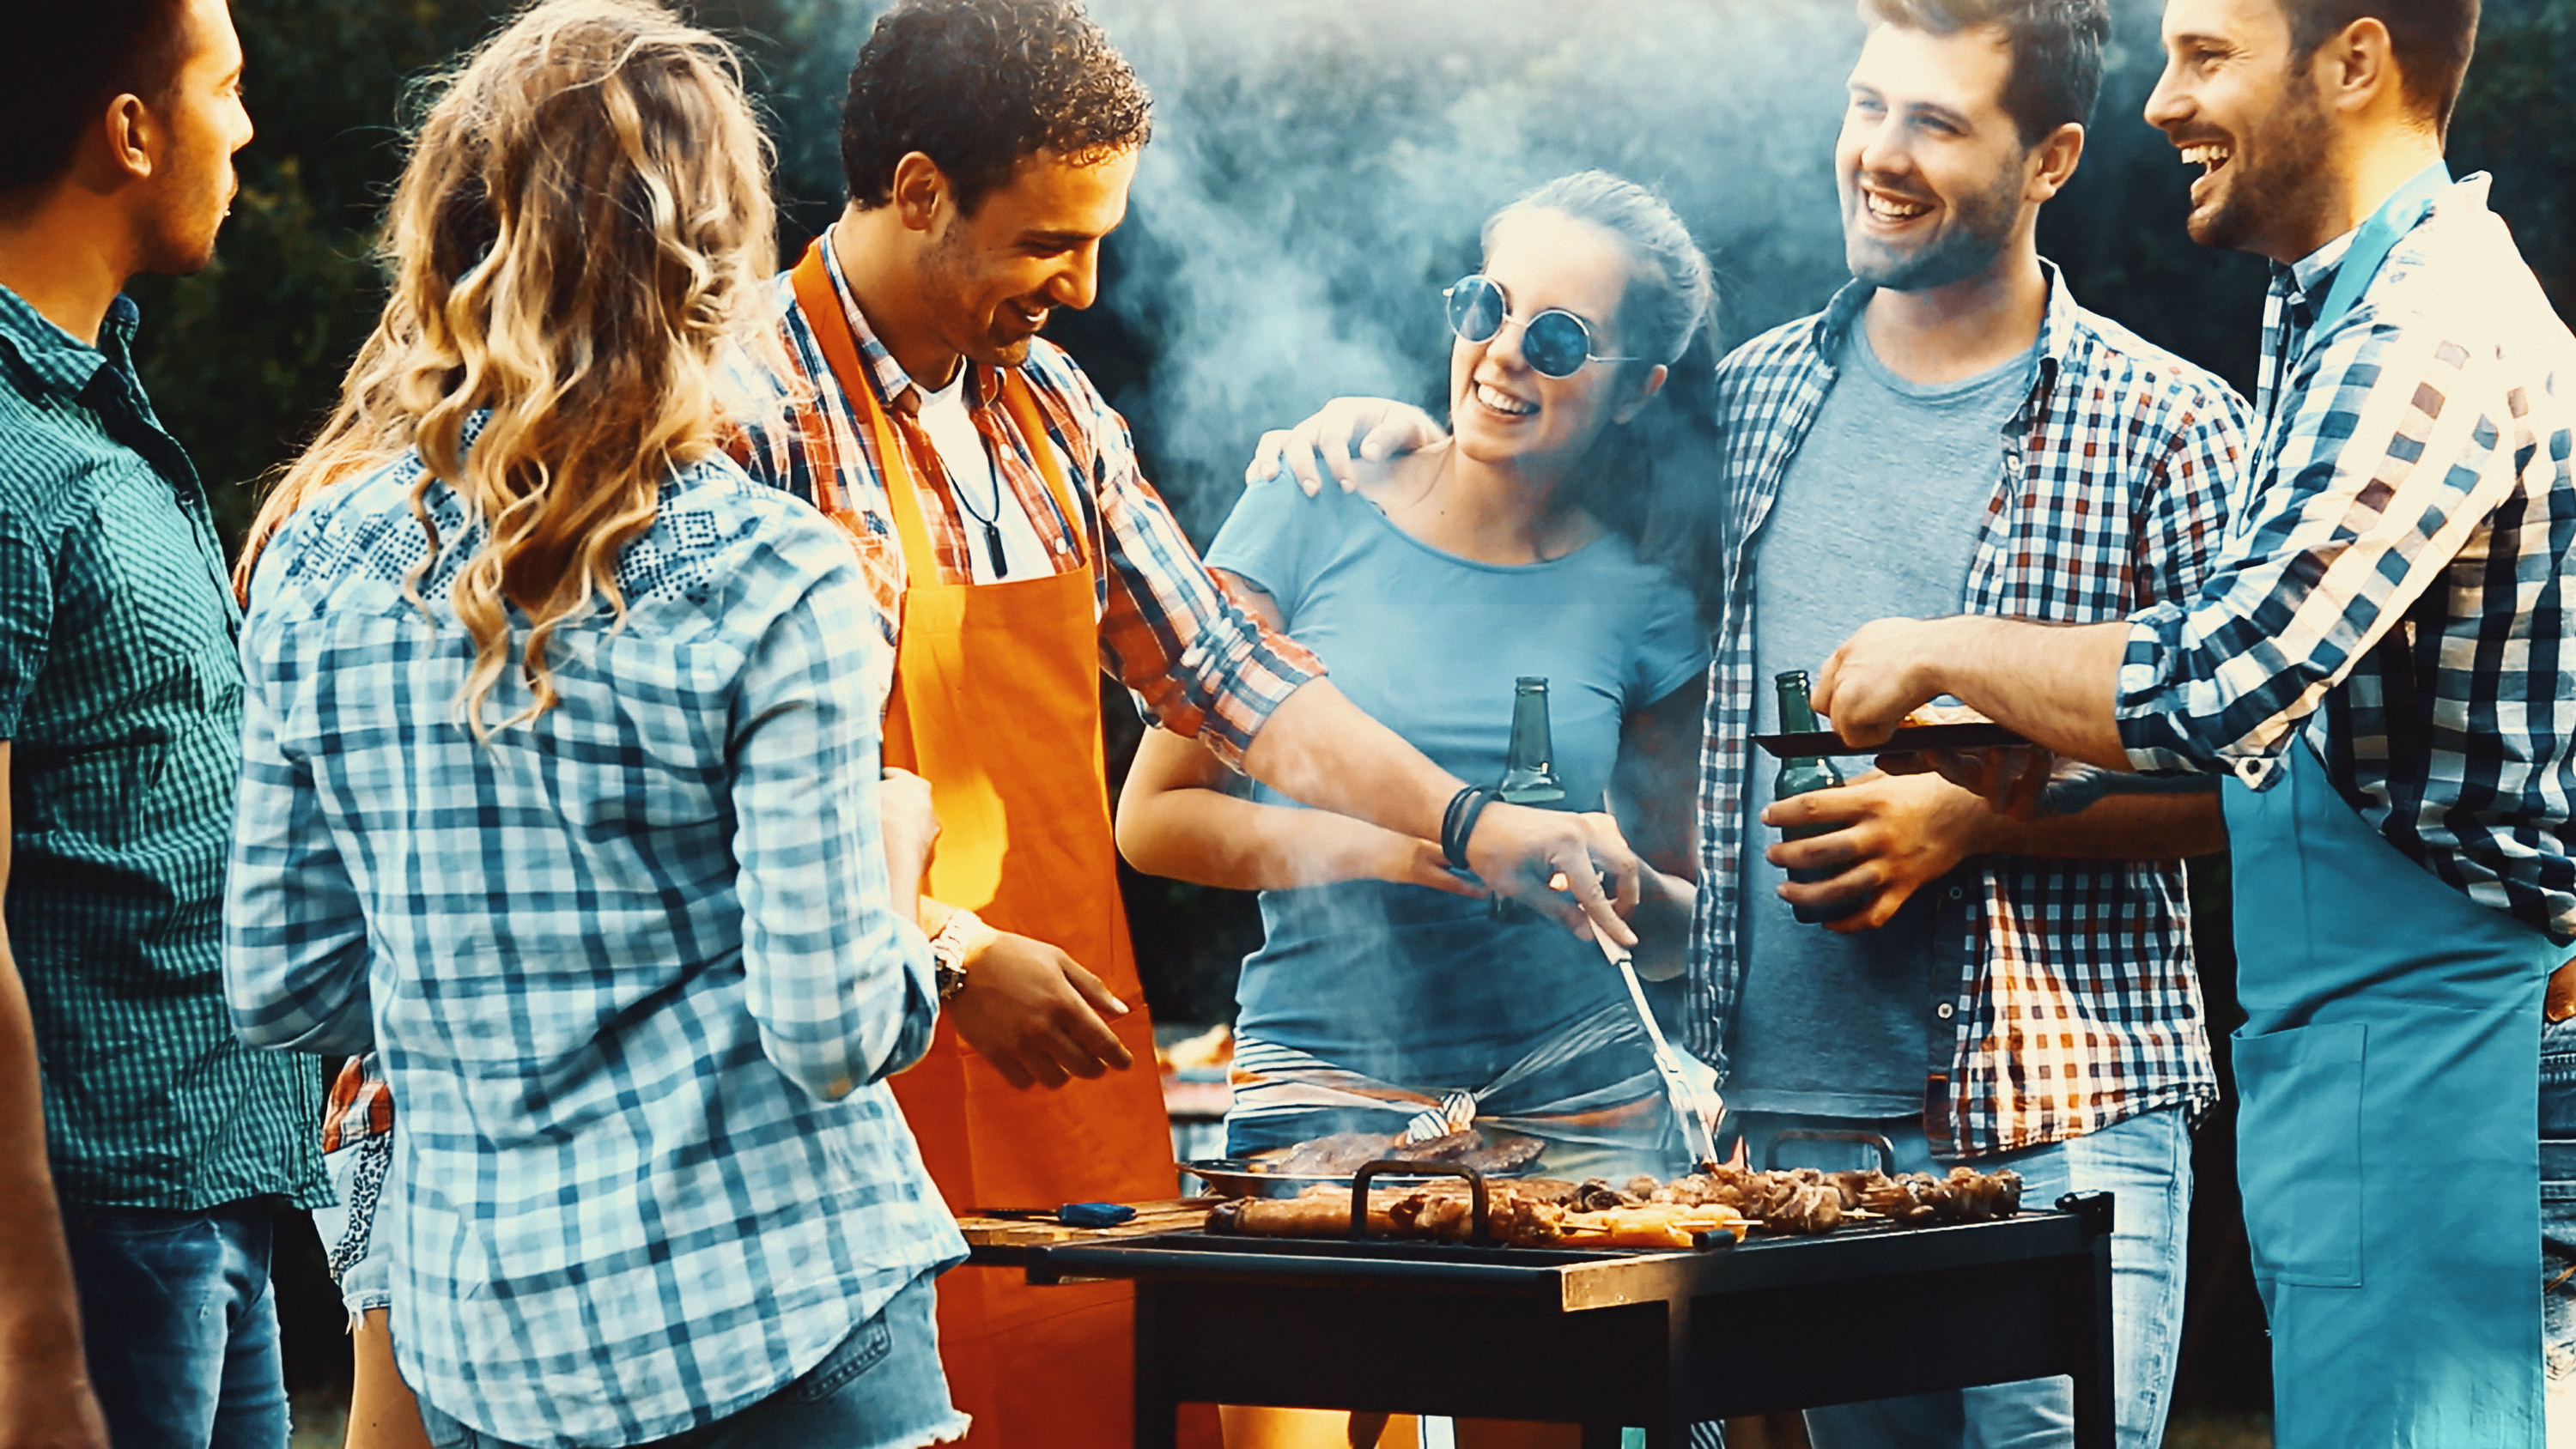 A group of people at a barbecue